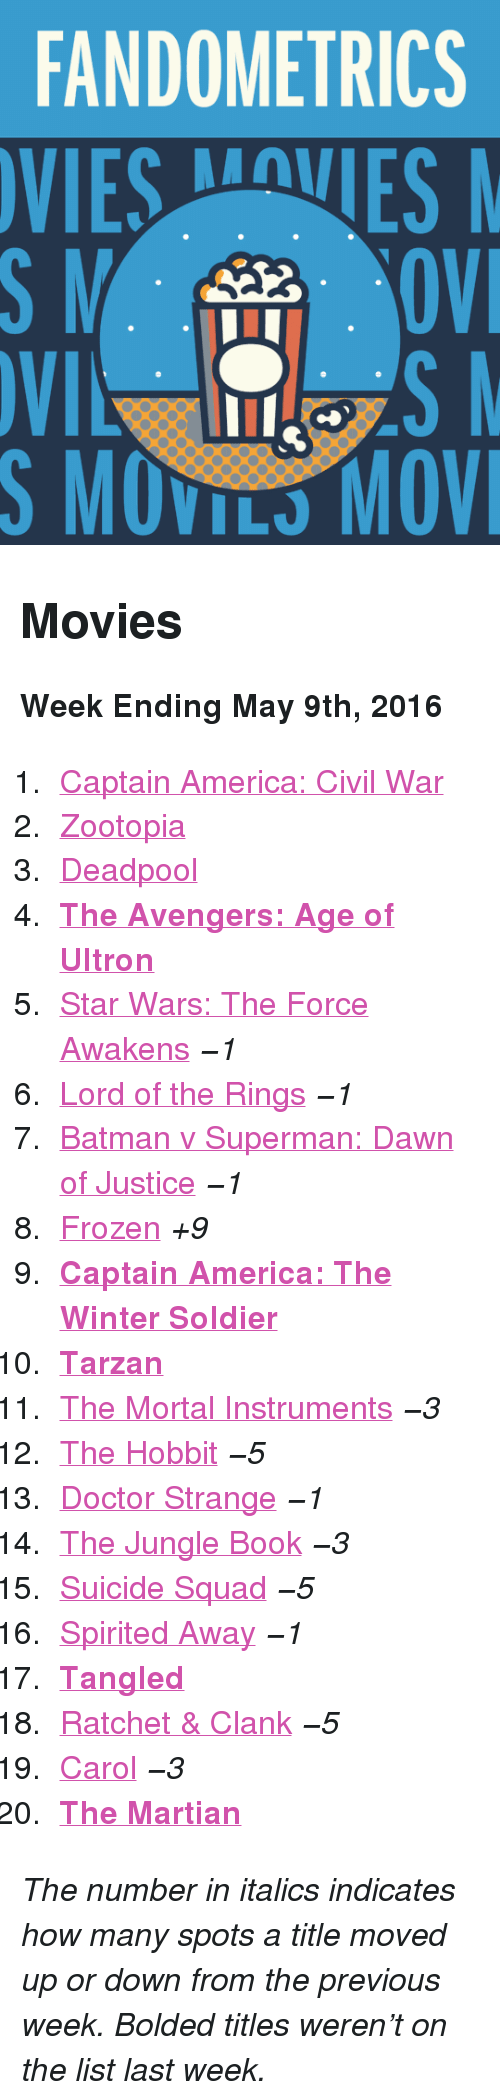 """ultron: FANDOMETRICS  VIESVES  S MOVILS MOV <h2>Movies</h2><p><b>Week Ending May 9th, 2016</b></p><ol><li><a href=""""http://www.tumblr.com/search/captain%20america%20civil%20war"""">Captain America: Civil War</a></li>  <li><a href=""""http://www.tumblr.com/search/zootopia"""">Zootopia</a></li>  <li><a href=""""http://www.tumblr.com/search/deadpool"""">Deadpool</a></li>  <li><a href=""""http://www.tumblr.com/search/age%20of%20ultron""""><b>The Avengers: Age of Ultron</b></a></li>  <li><a href=""""http://www.tumblr.com/search/the%20force%20awakens"""">Star Wars: The Force Awakens</a><i>−1</i></li>  <li><a href=""""http://www.tumblr.com/search/lotr"""">Lord of the Rings</a><i>−1</i></li>  <li><a href=""""http://www.tumblr.com/search/batman%20v%20superman"""">Batman v Superman: Dawn of Justice</a><i>−1</i></li>  <li><a href=""""http://www.tumblr.com/search/frozen"""">Frozen</a><i>+9</i></li>  <li><a href=""""http://www.tumblr.com/search/catws""""><b>Captain America: The Winter Soldier</b></a></li>  <li><a href=""""http://www.tumblr.com/search/tarzan""""><b>Tarzan</b></a></li>  <li><a href=""""http://www.tumblr.com/search/the%20mortal%20instruments"""">The Mortal Instruments</a><i>−3</i></li>  <li><a href=""""http://www.tumblr.com/search/the%20hobbit"""">The Hobbit</a><i>−5</i></li>  <li><a href=""""http://www.tumblr.com/search/doctor%20strange"""">Doctor Strange</a><i>−1</i></li>  <li><a href=""""http://www.tumblr.com/search/the%20jungle%20book"""">The Jungle Book</a><i>−3</i></li>  <li><a href=""""http://www.tumblr.com/search/suicide%20squad"""">Suicide Squad</a><i>−5</i></li>  <li><a href=""""http://www.tumblr.com/search/spirited%20away"""">Spirited Away</a><i>−1</i></li>  <li><a href=""""http://www.tumblr.com/search/tangled""""><b>Tangled</b></a></li>  <li><a href=""""http://www.tumblr.com/search/ratchet%20and%20clank"""">Ratchet &amp; Clank</a><i>−5</i></li>  <li><a href=""""http://www.tumblr.com/search/carol"""">Carol</a><i>−3</i></li>  <li><a href=""""http://www.tumblr.com/search/the%20martian""""><b>The Martian</b></a></li></ol><p><i>The number in italics indicates how many spots"""